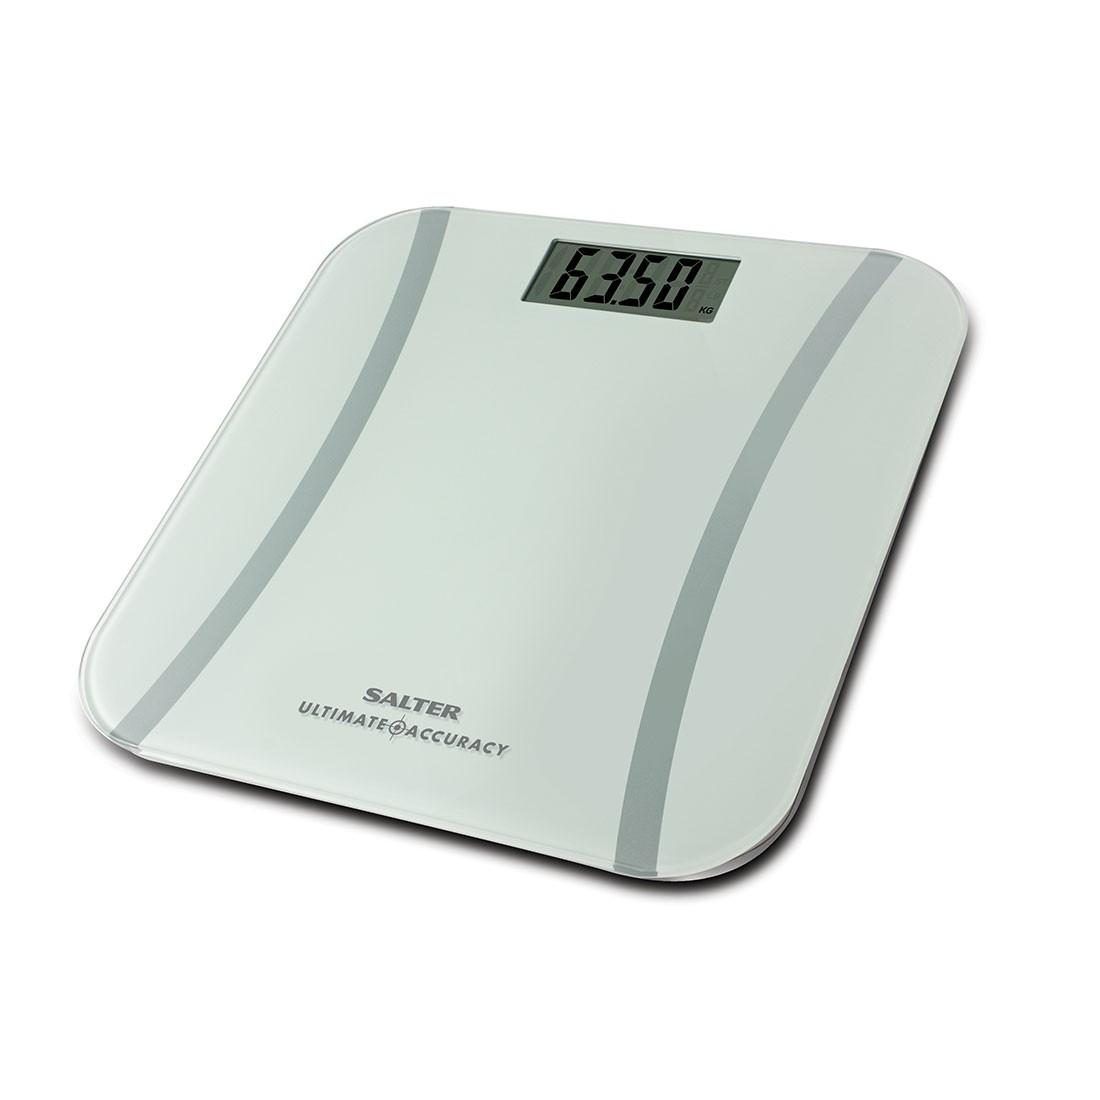 Bathroom scale accuracy consistency - Ultimate Accuracy Bathroom Scale